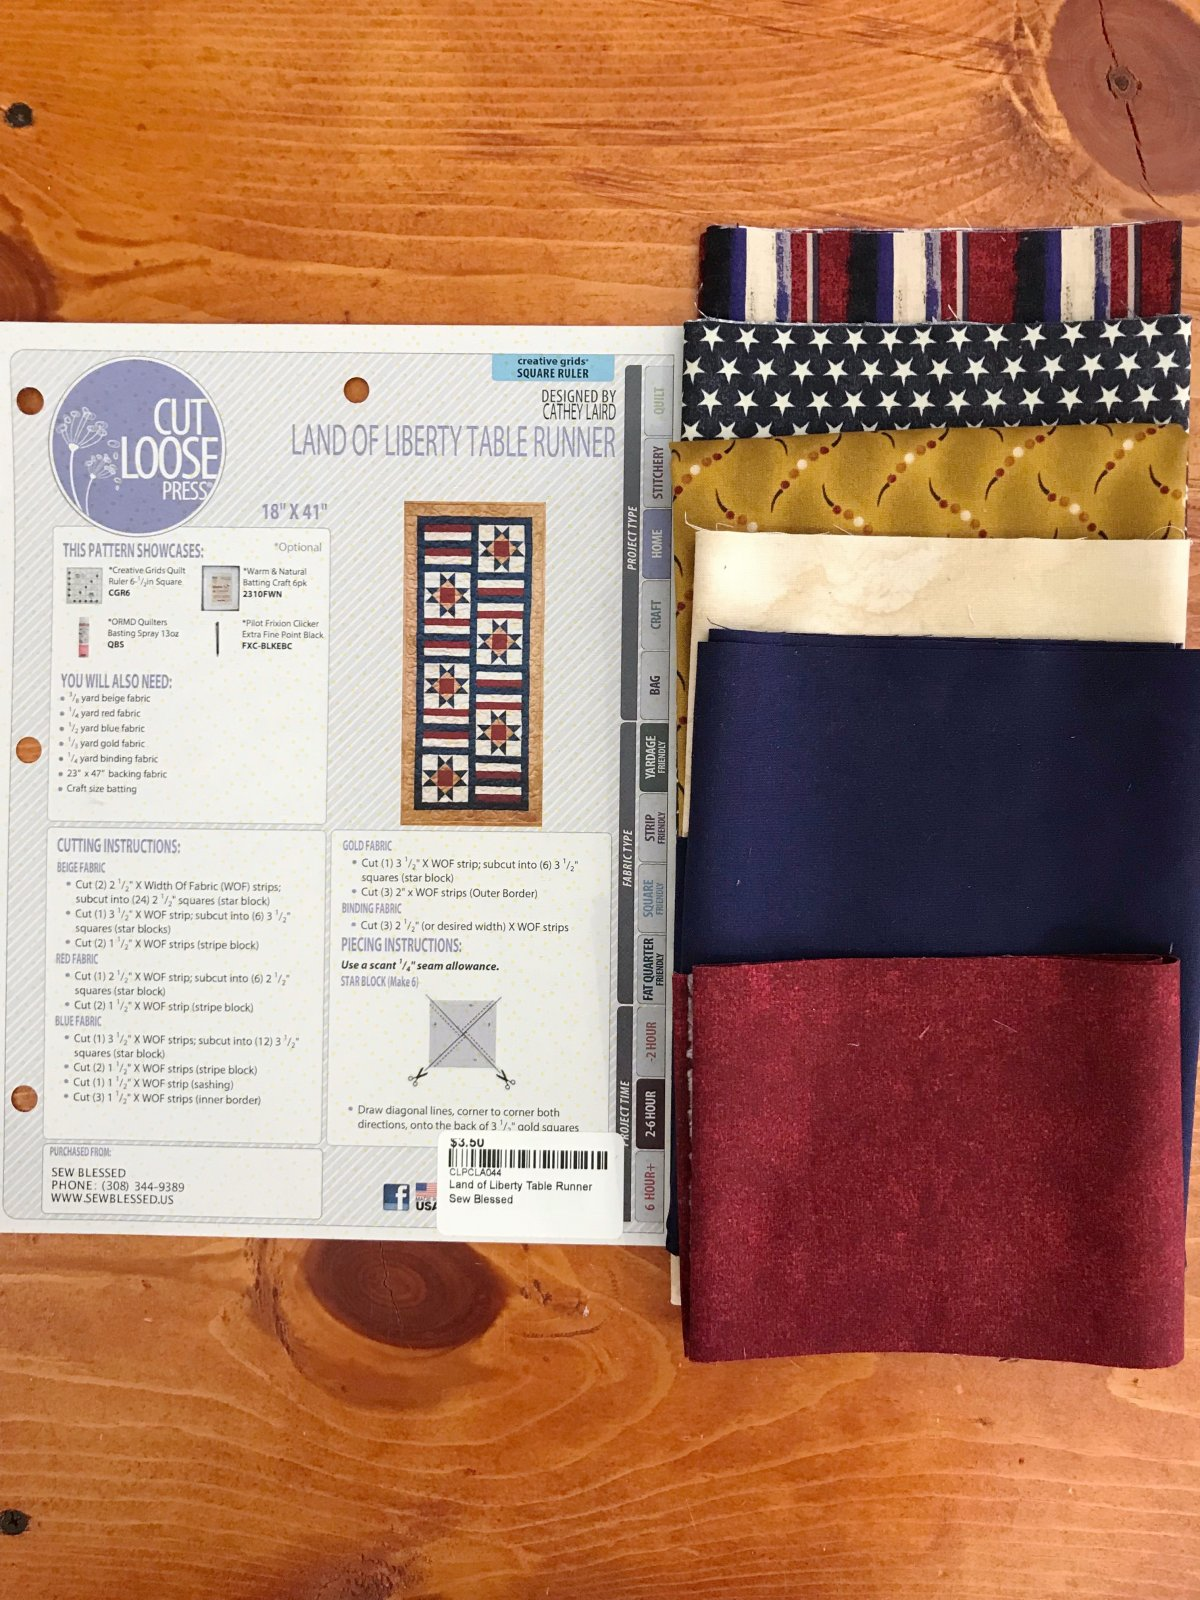 Land of Liberty Table Runner Kit